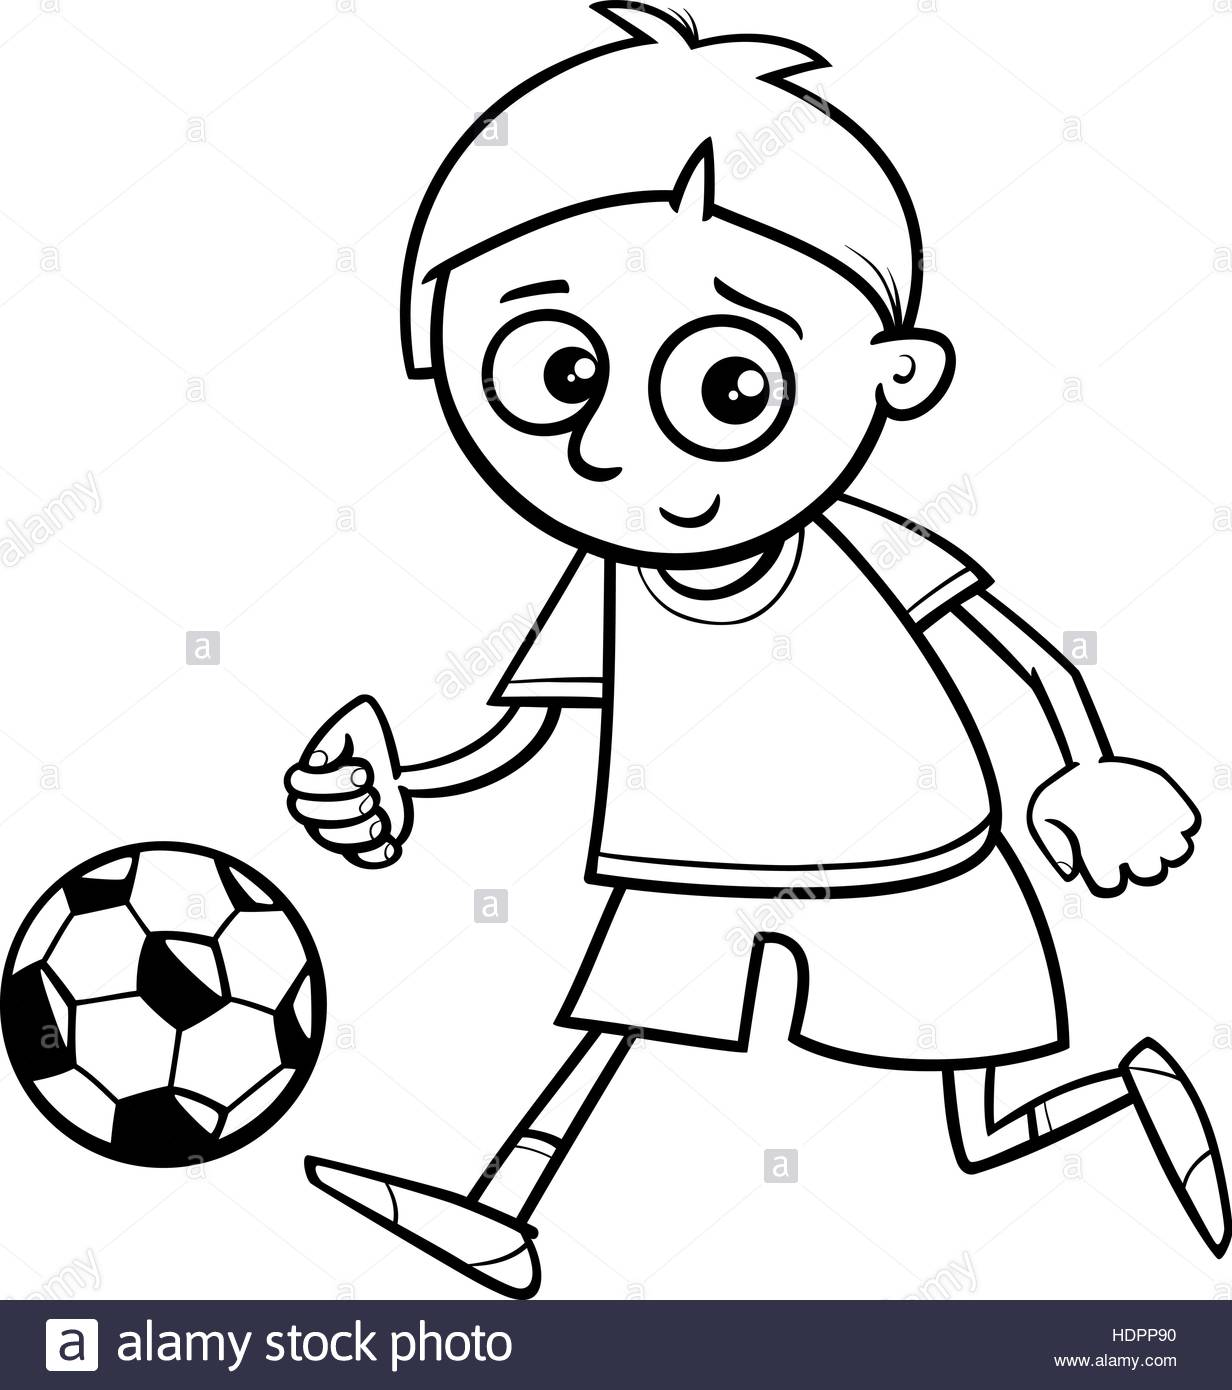 1232x1390 Black And White Cartoon Illustration Of Boy Playing Football